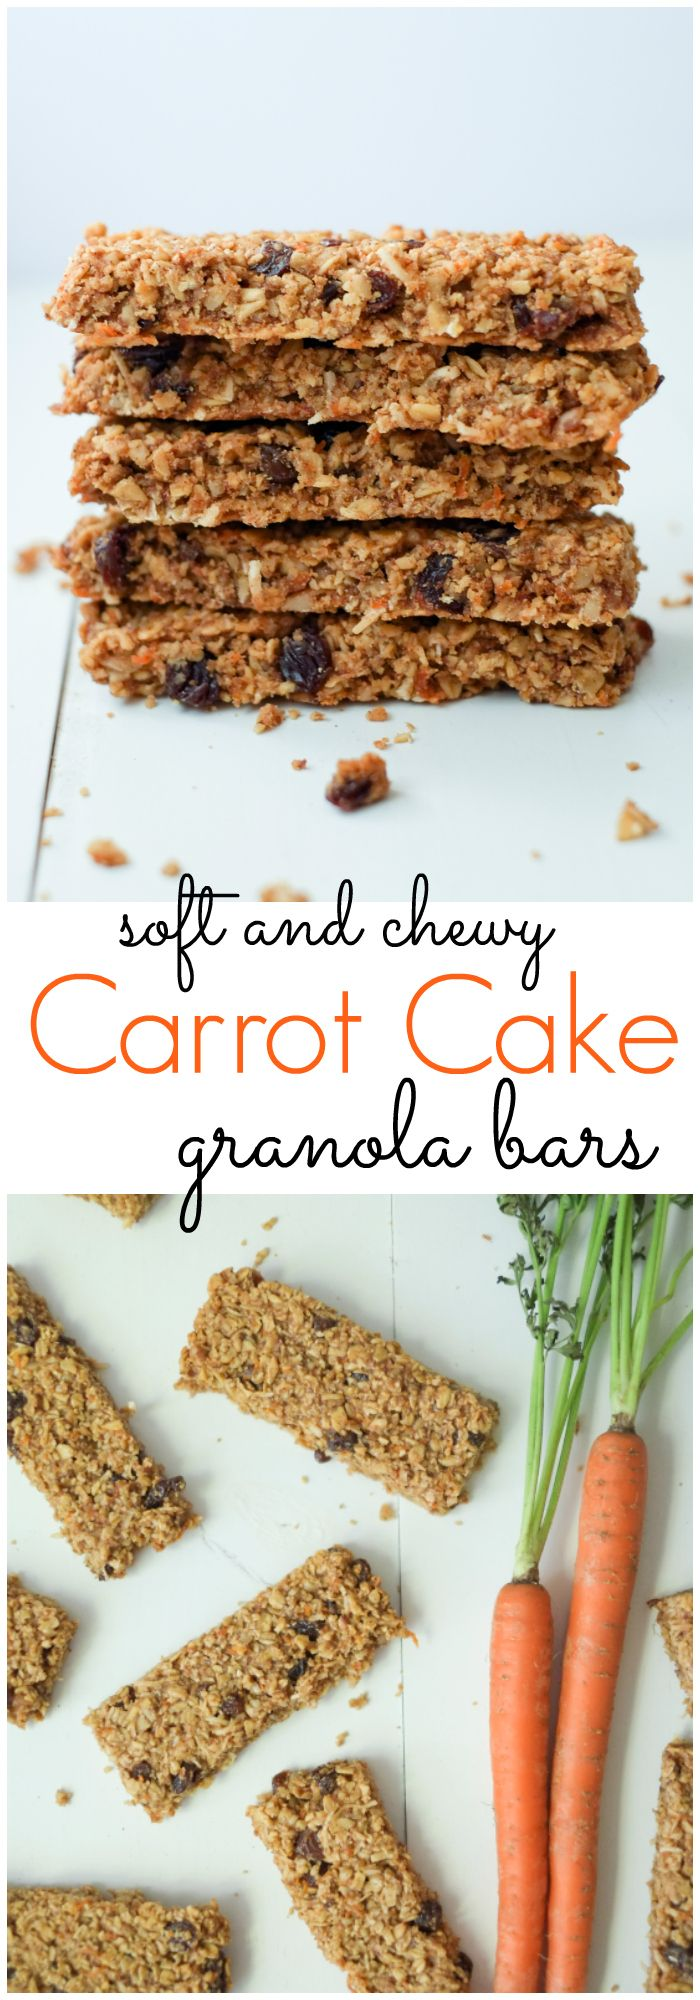 FOOD - Healthy Carrot Cake Granola Bars. We love these healthy, soft carrot cake… http://www.superhealthykids.com/healthy-carrot-cake-granola-bars-recipe/